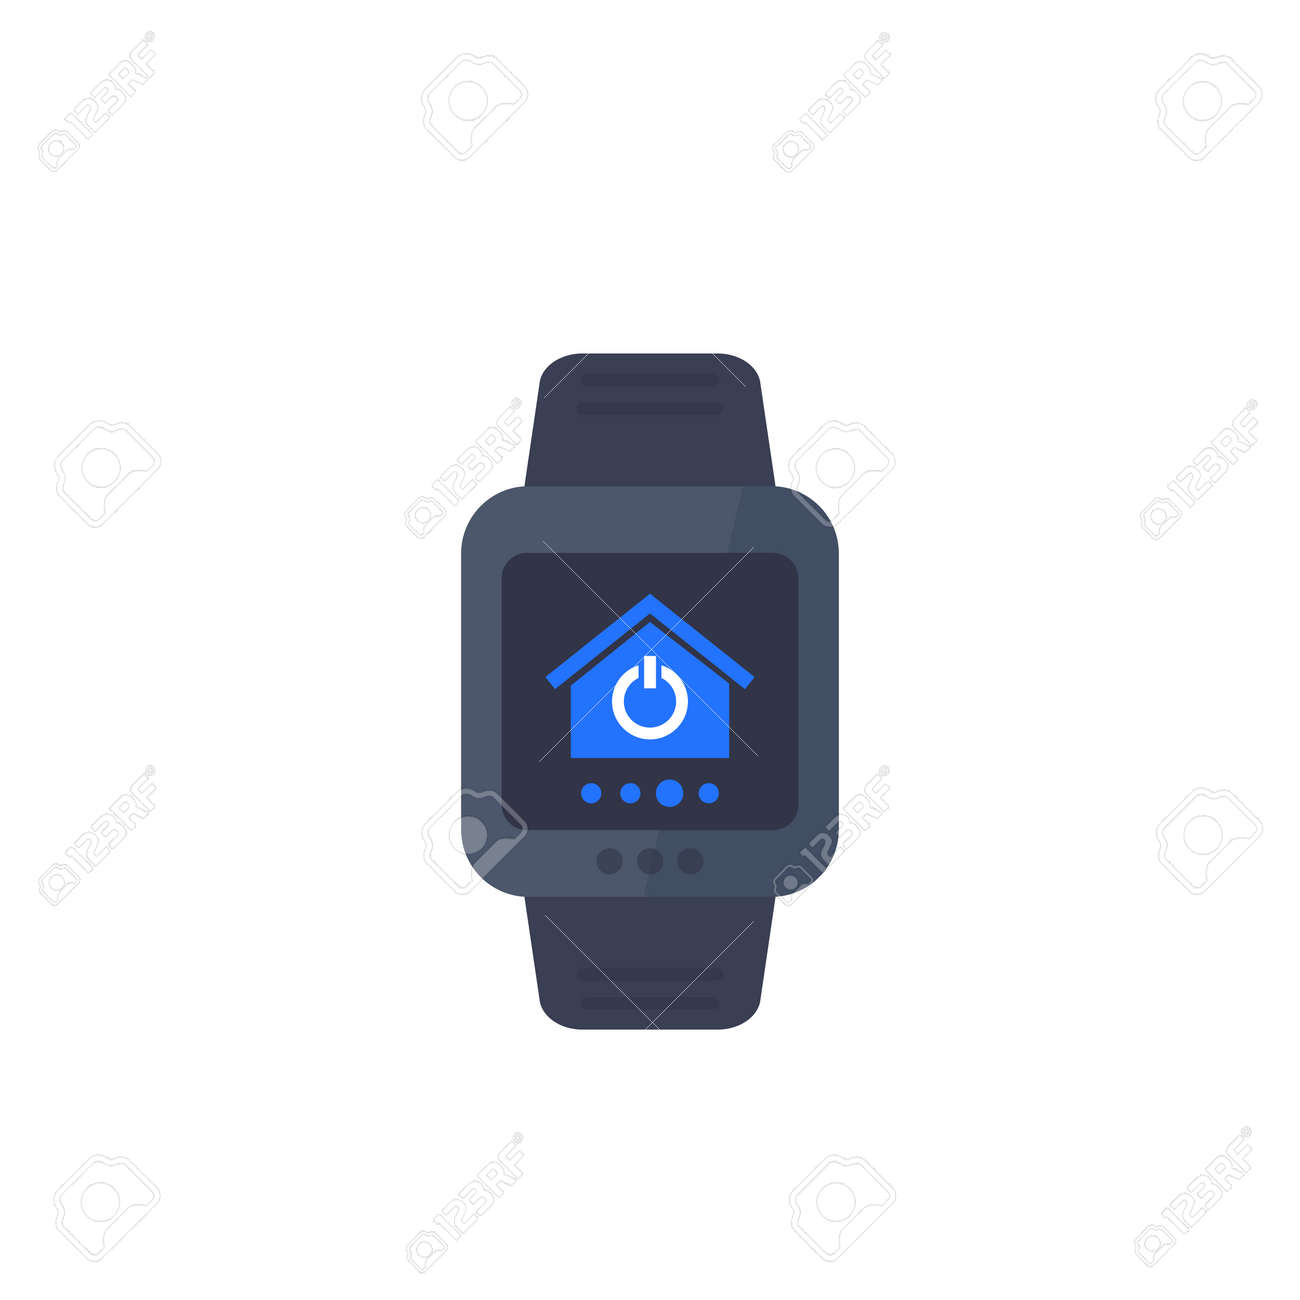 smart home app for smartwatch, vector icon - 169350854